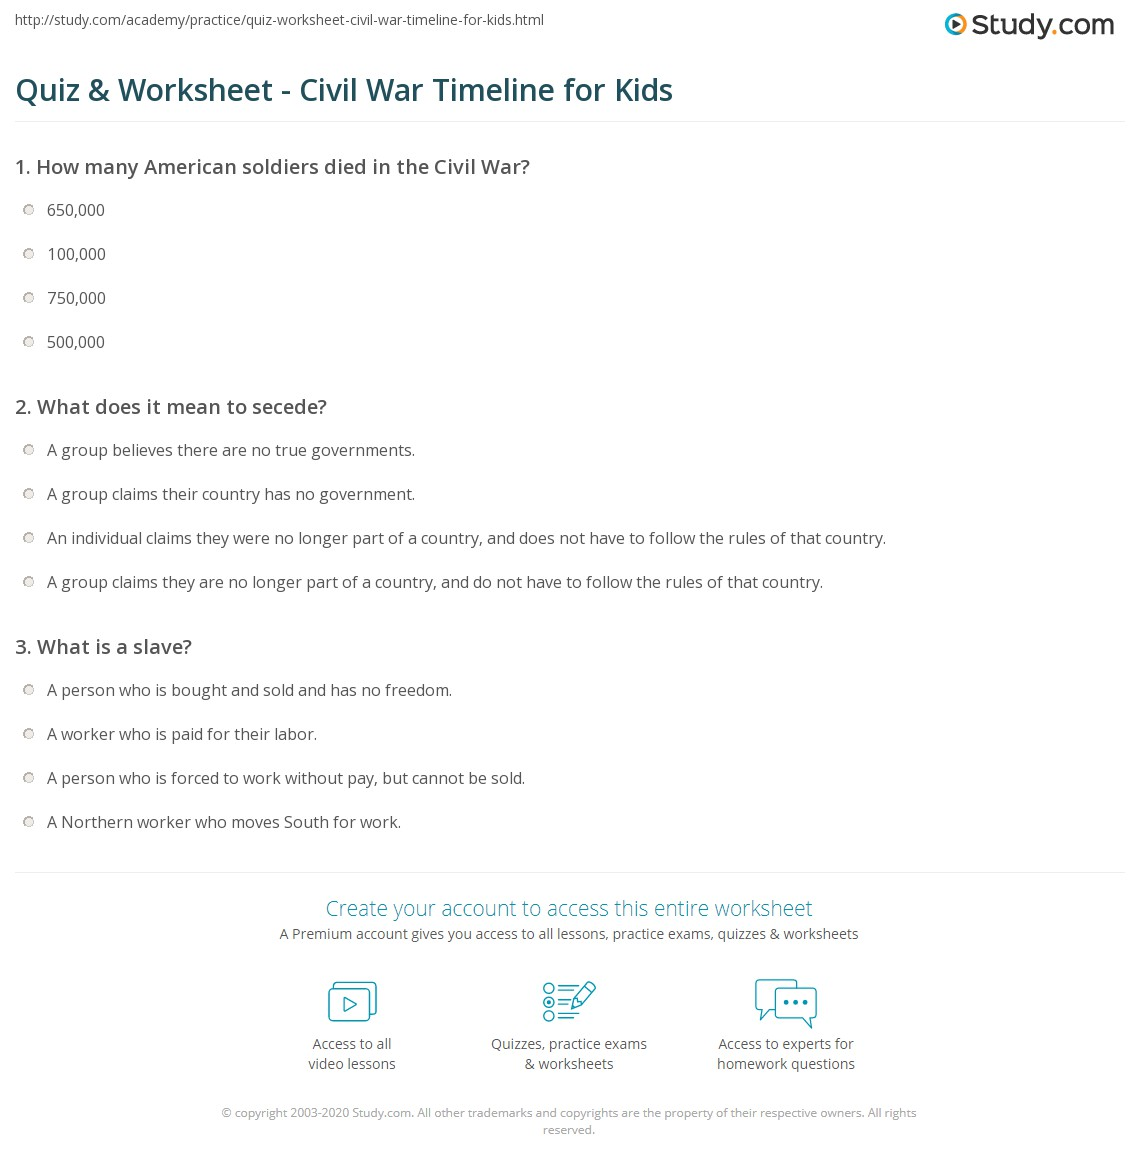 civil war timeline worksheet kidz activities. Black Bedroom Furniture Sets. Home Design Ideas